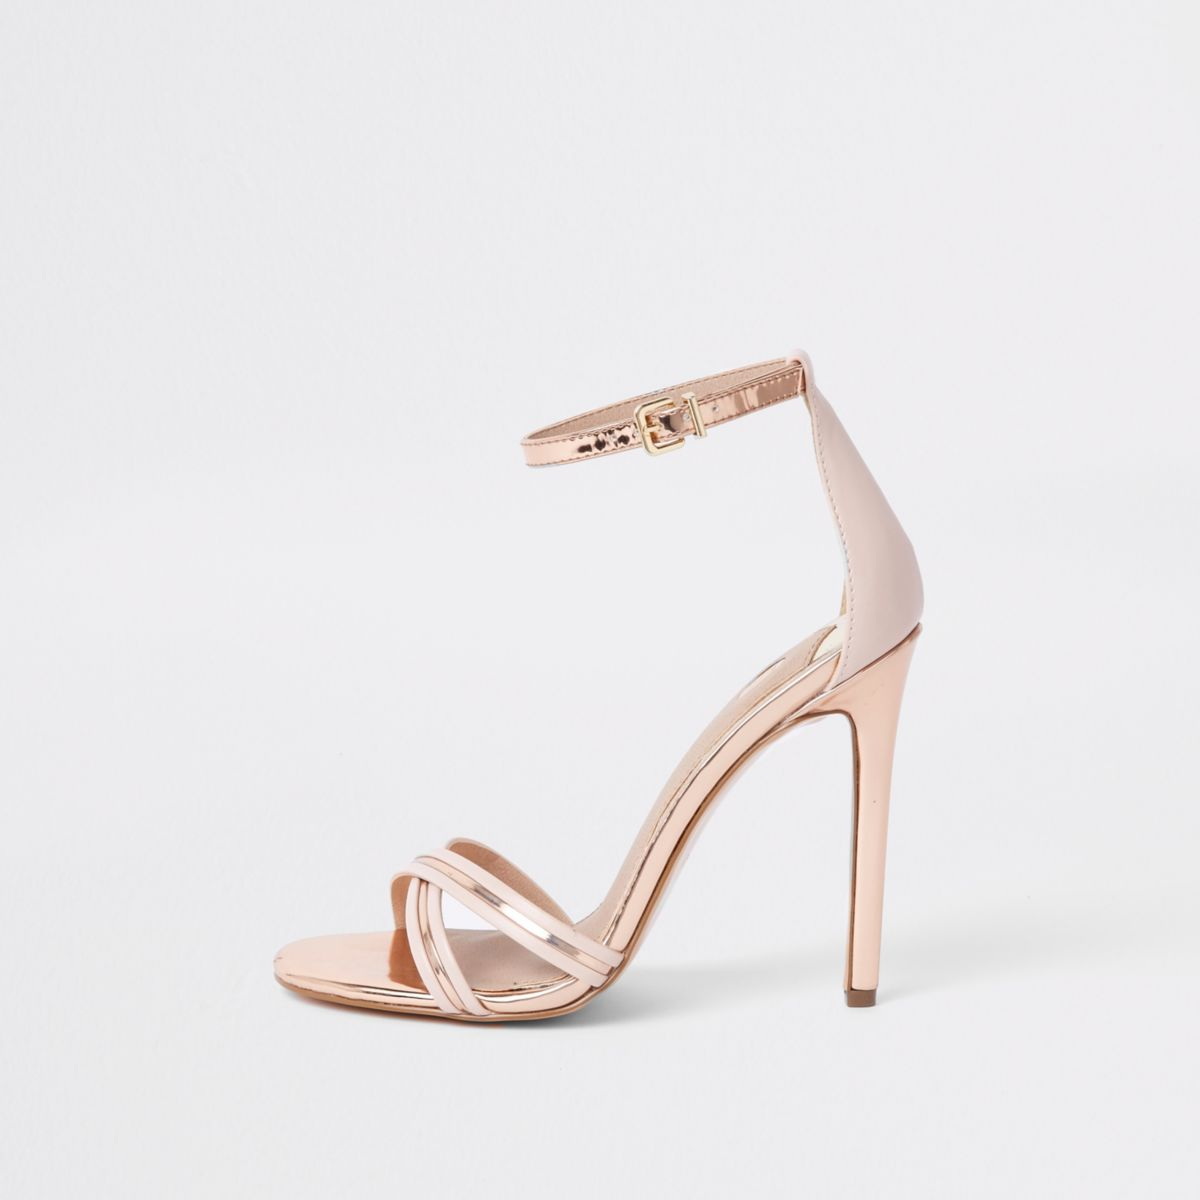 Gold metallic barely there sandals